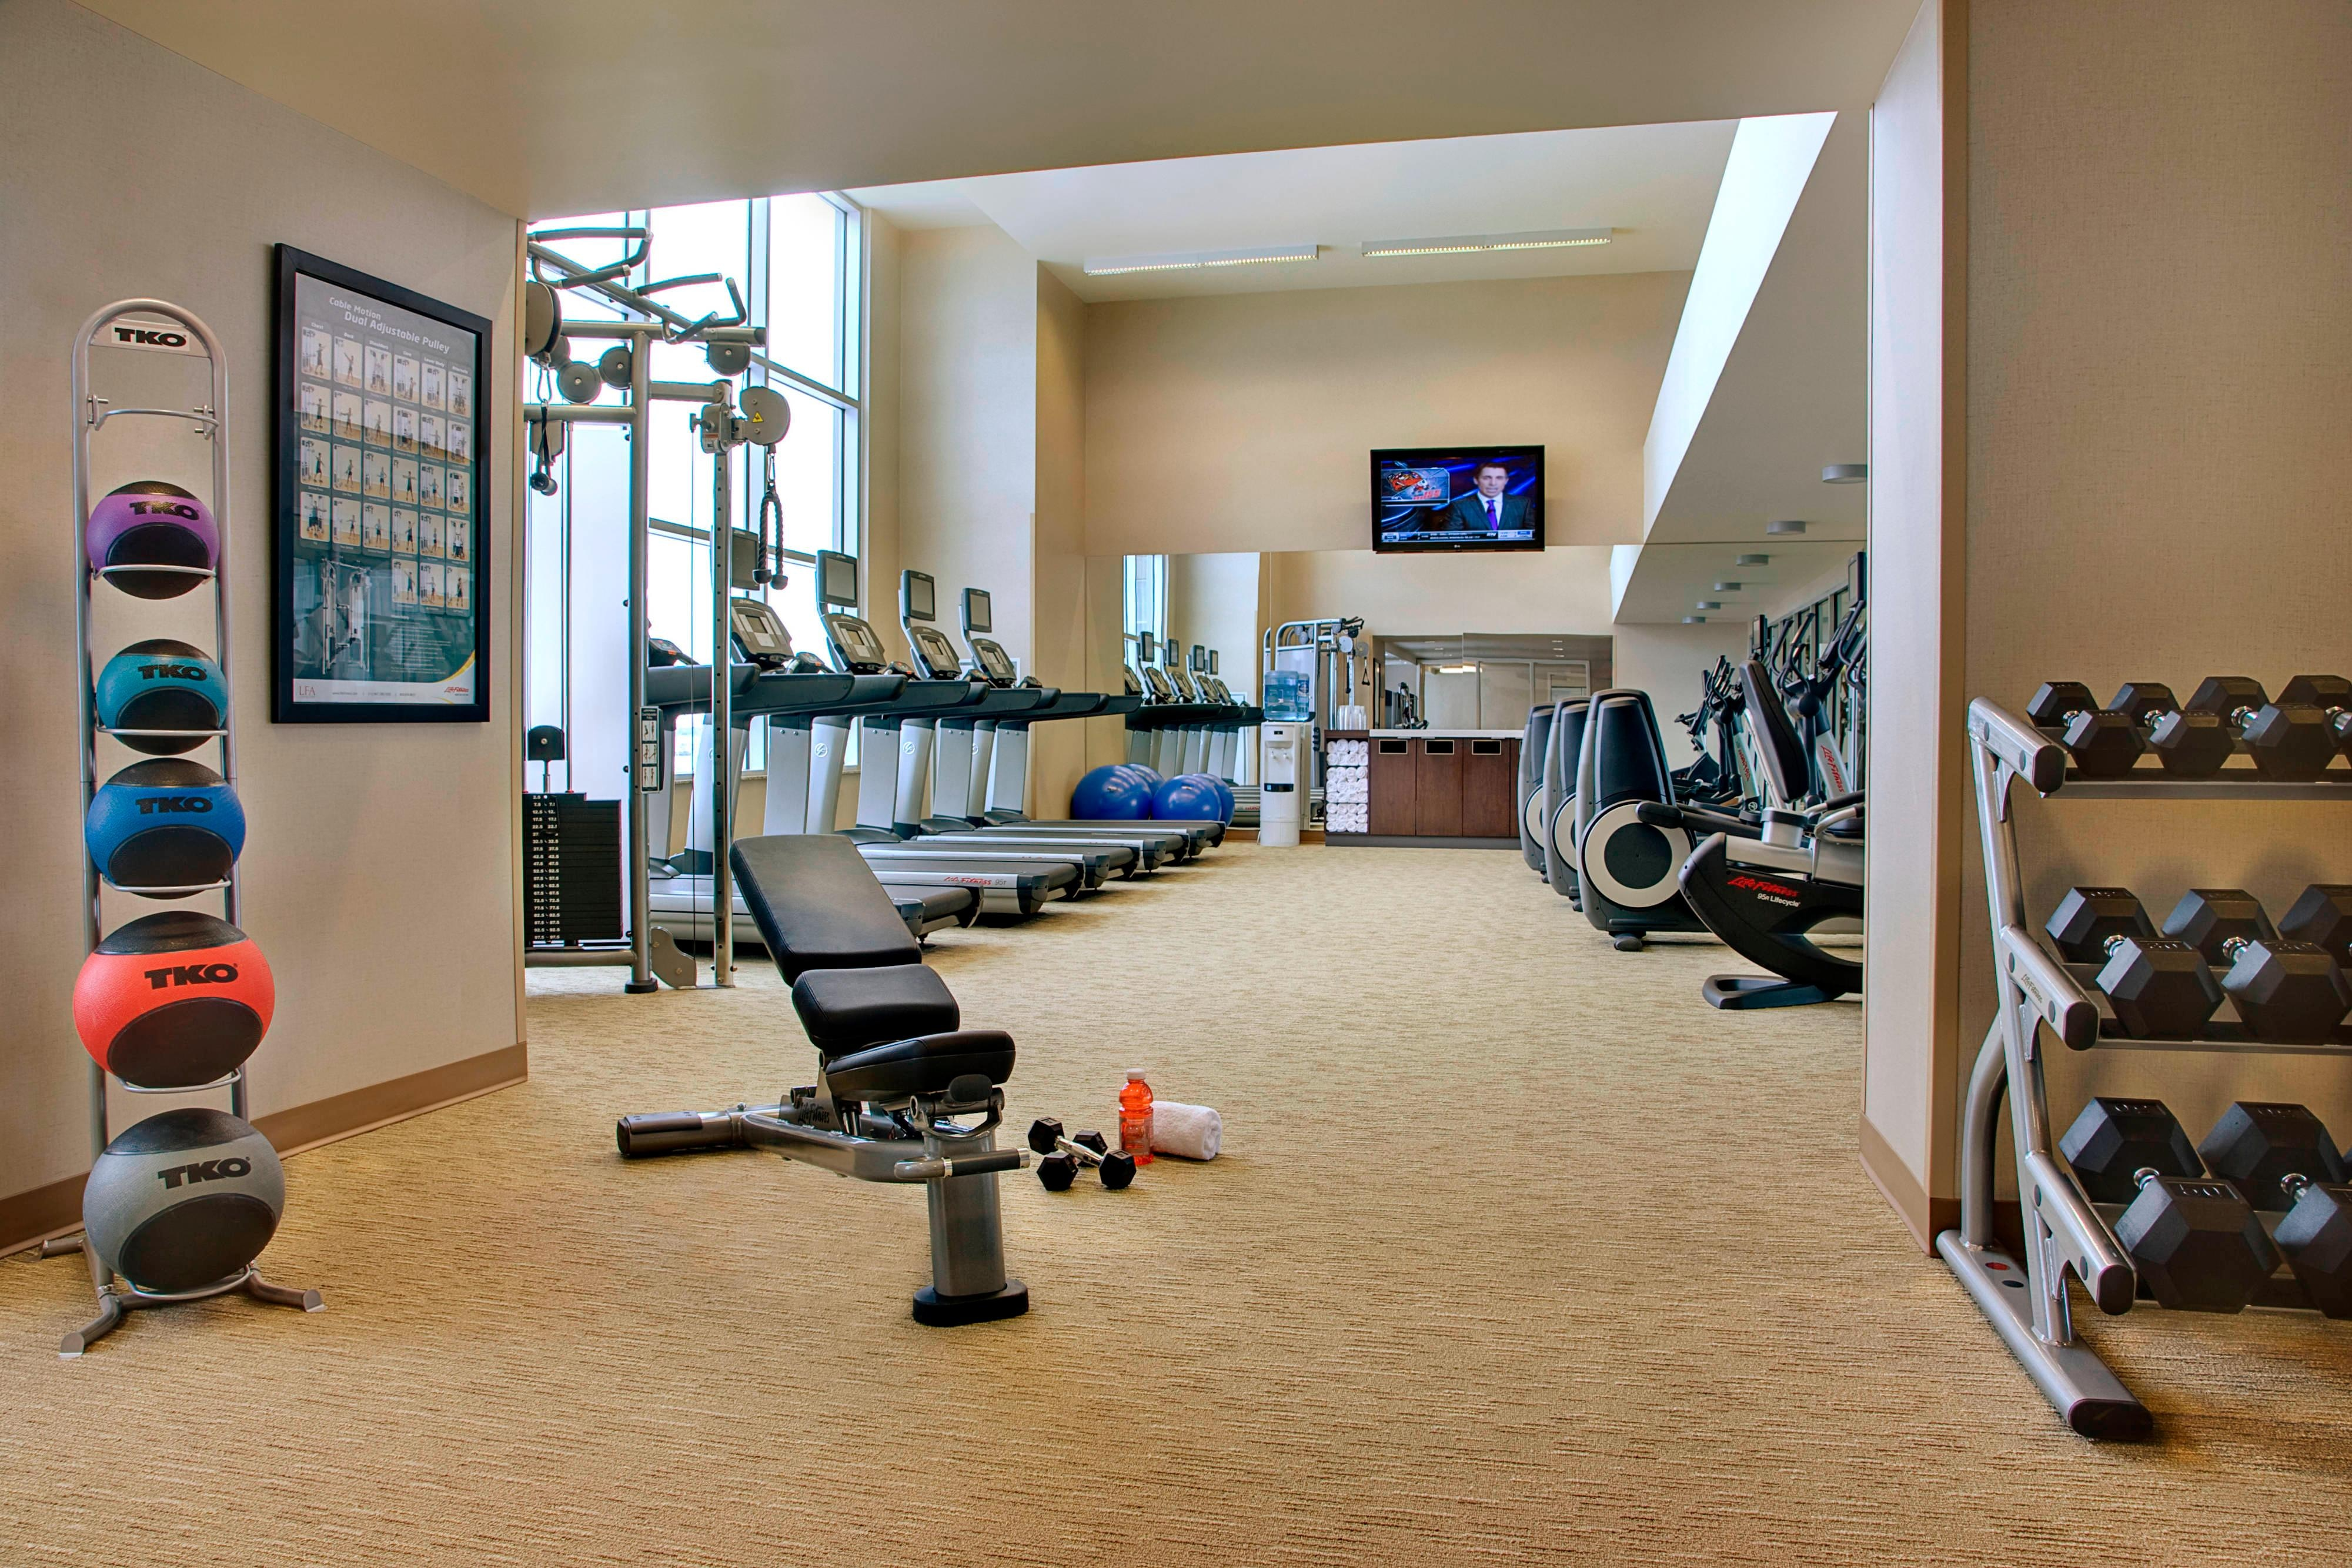 Calgary Airport Hotel Fitness Center